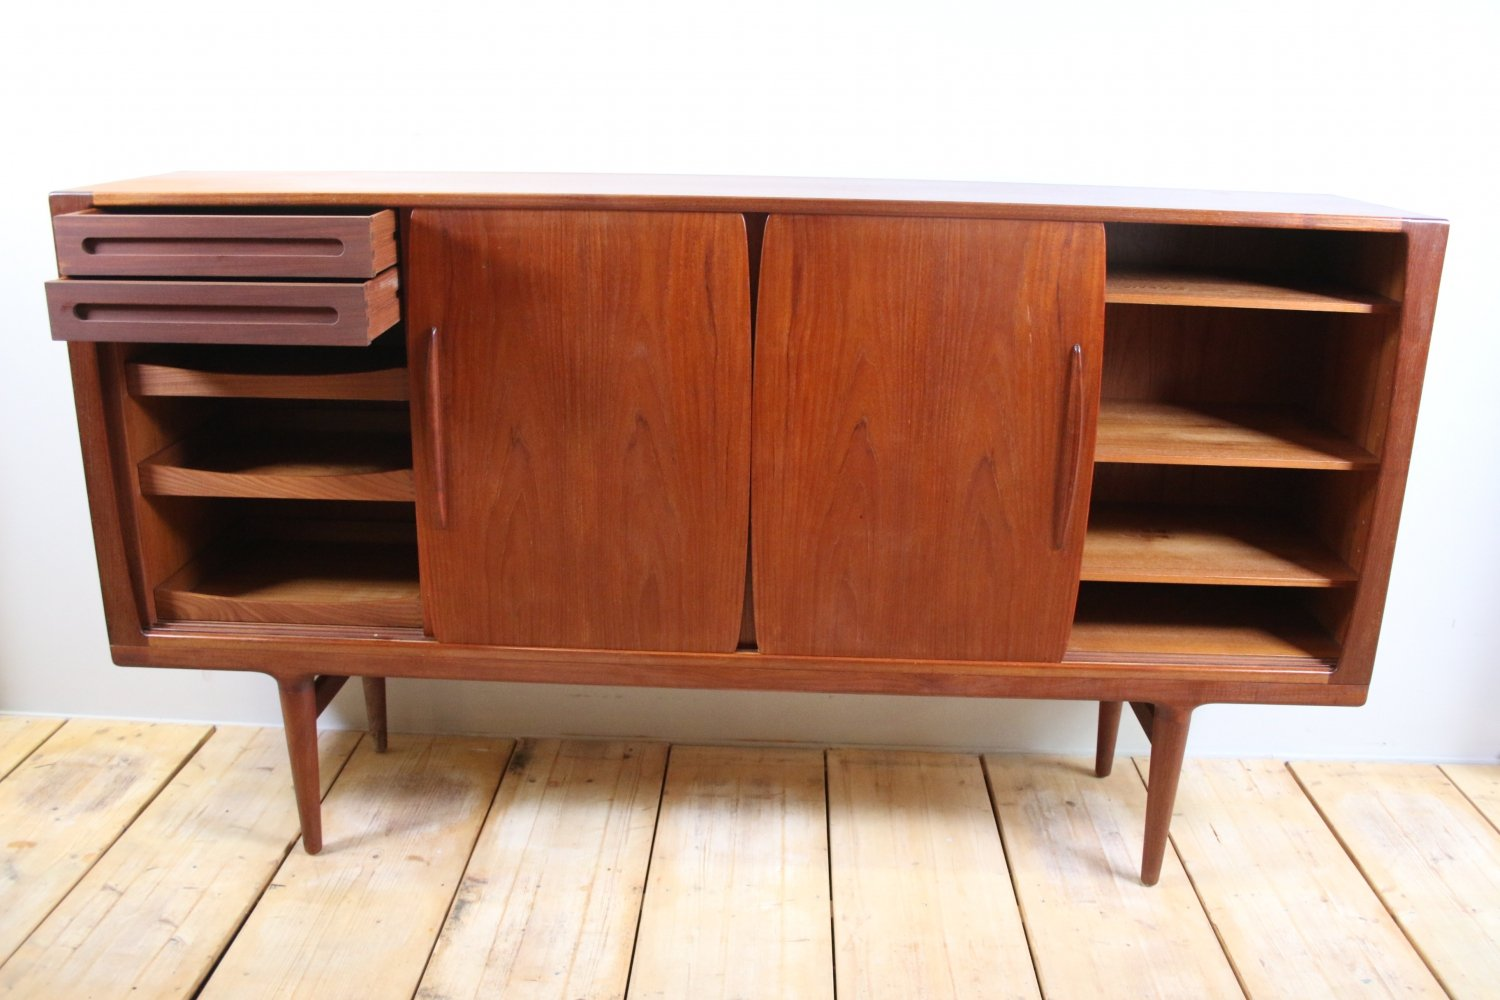 Danish High Board with sliding doors & drawers, 1960s